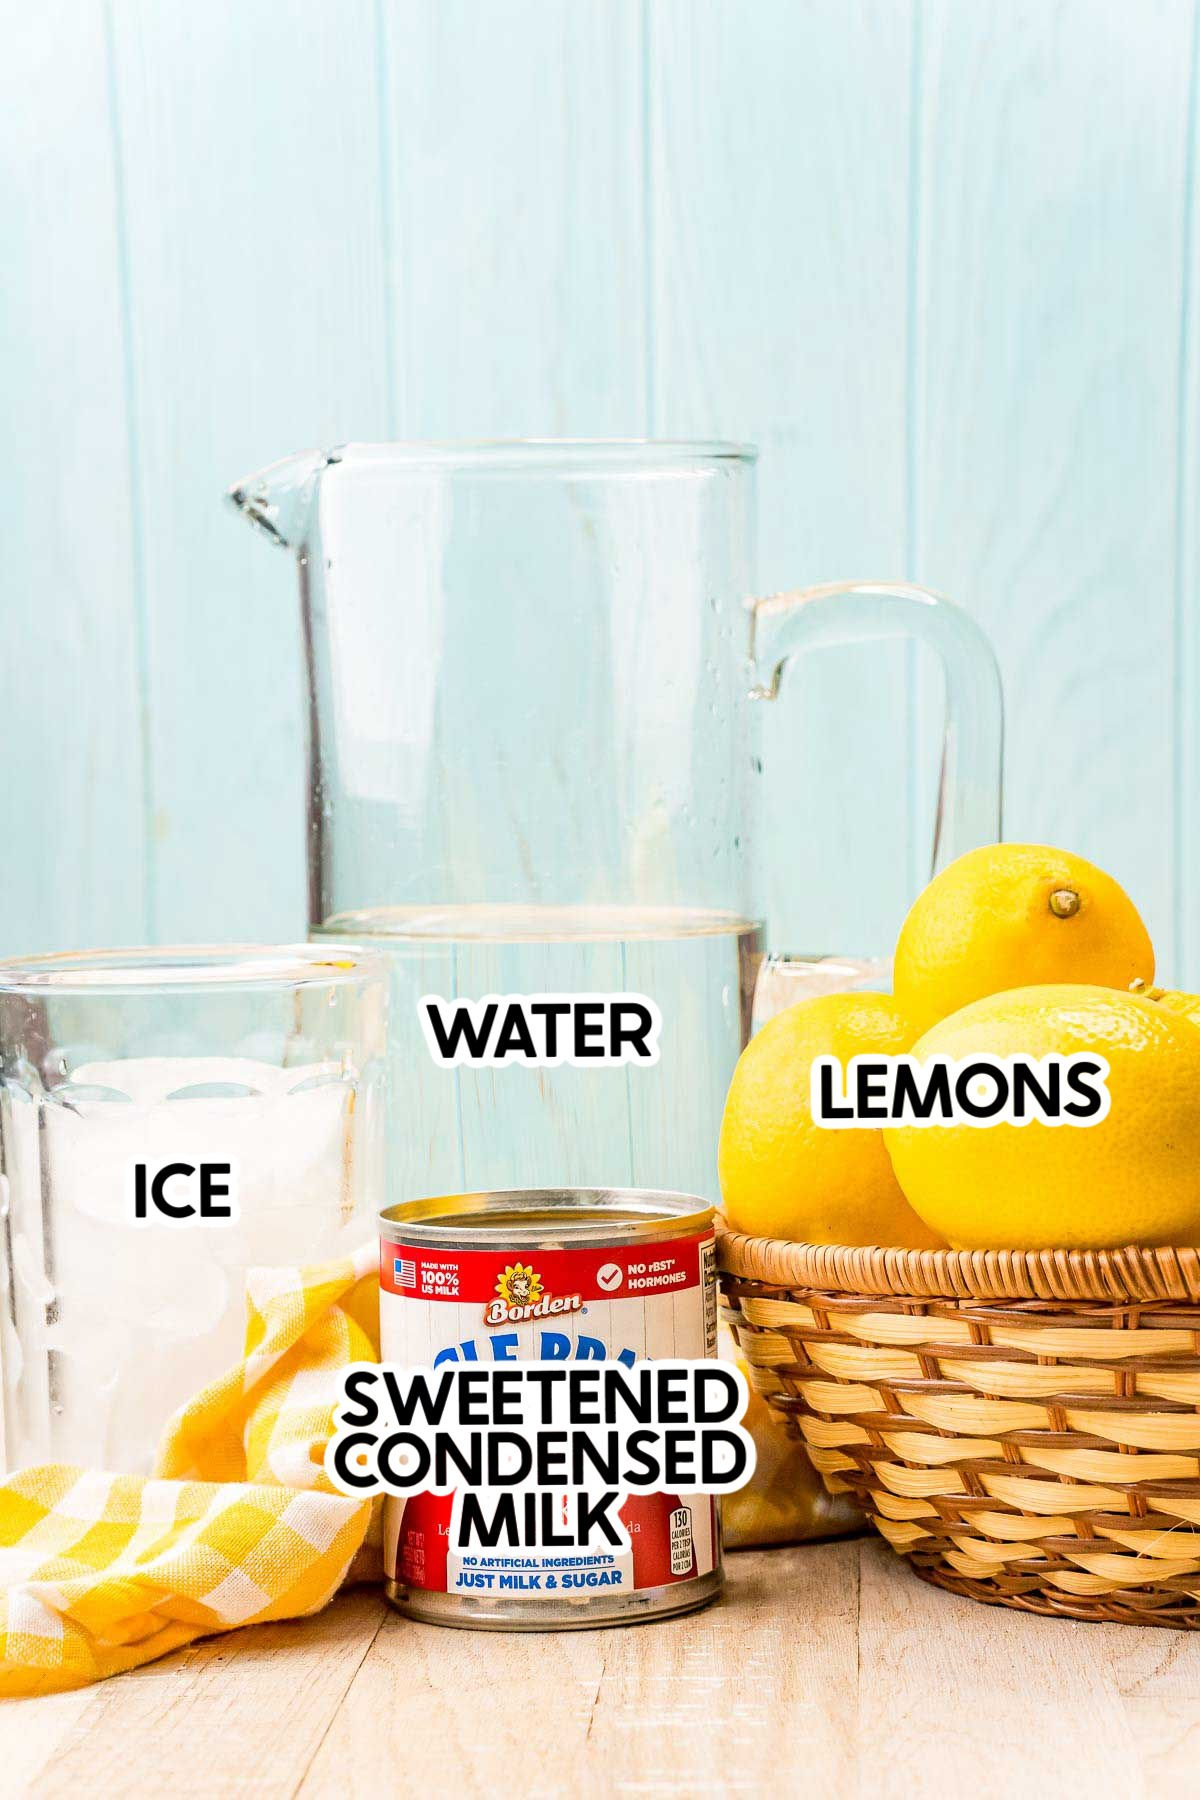 ingredients for creamy lemonade with labels